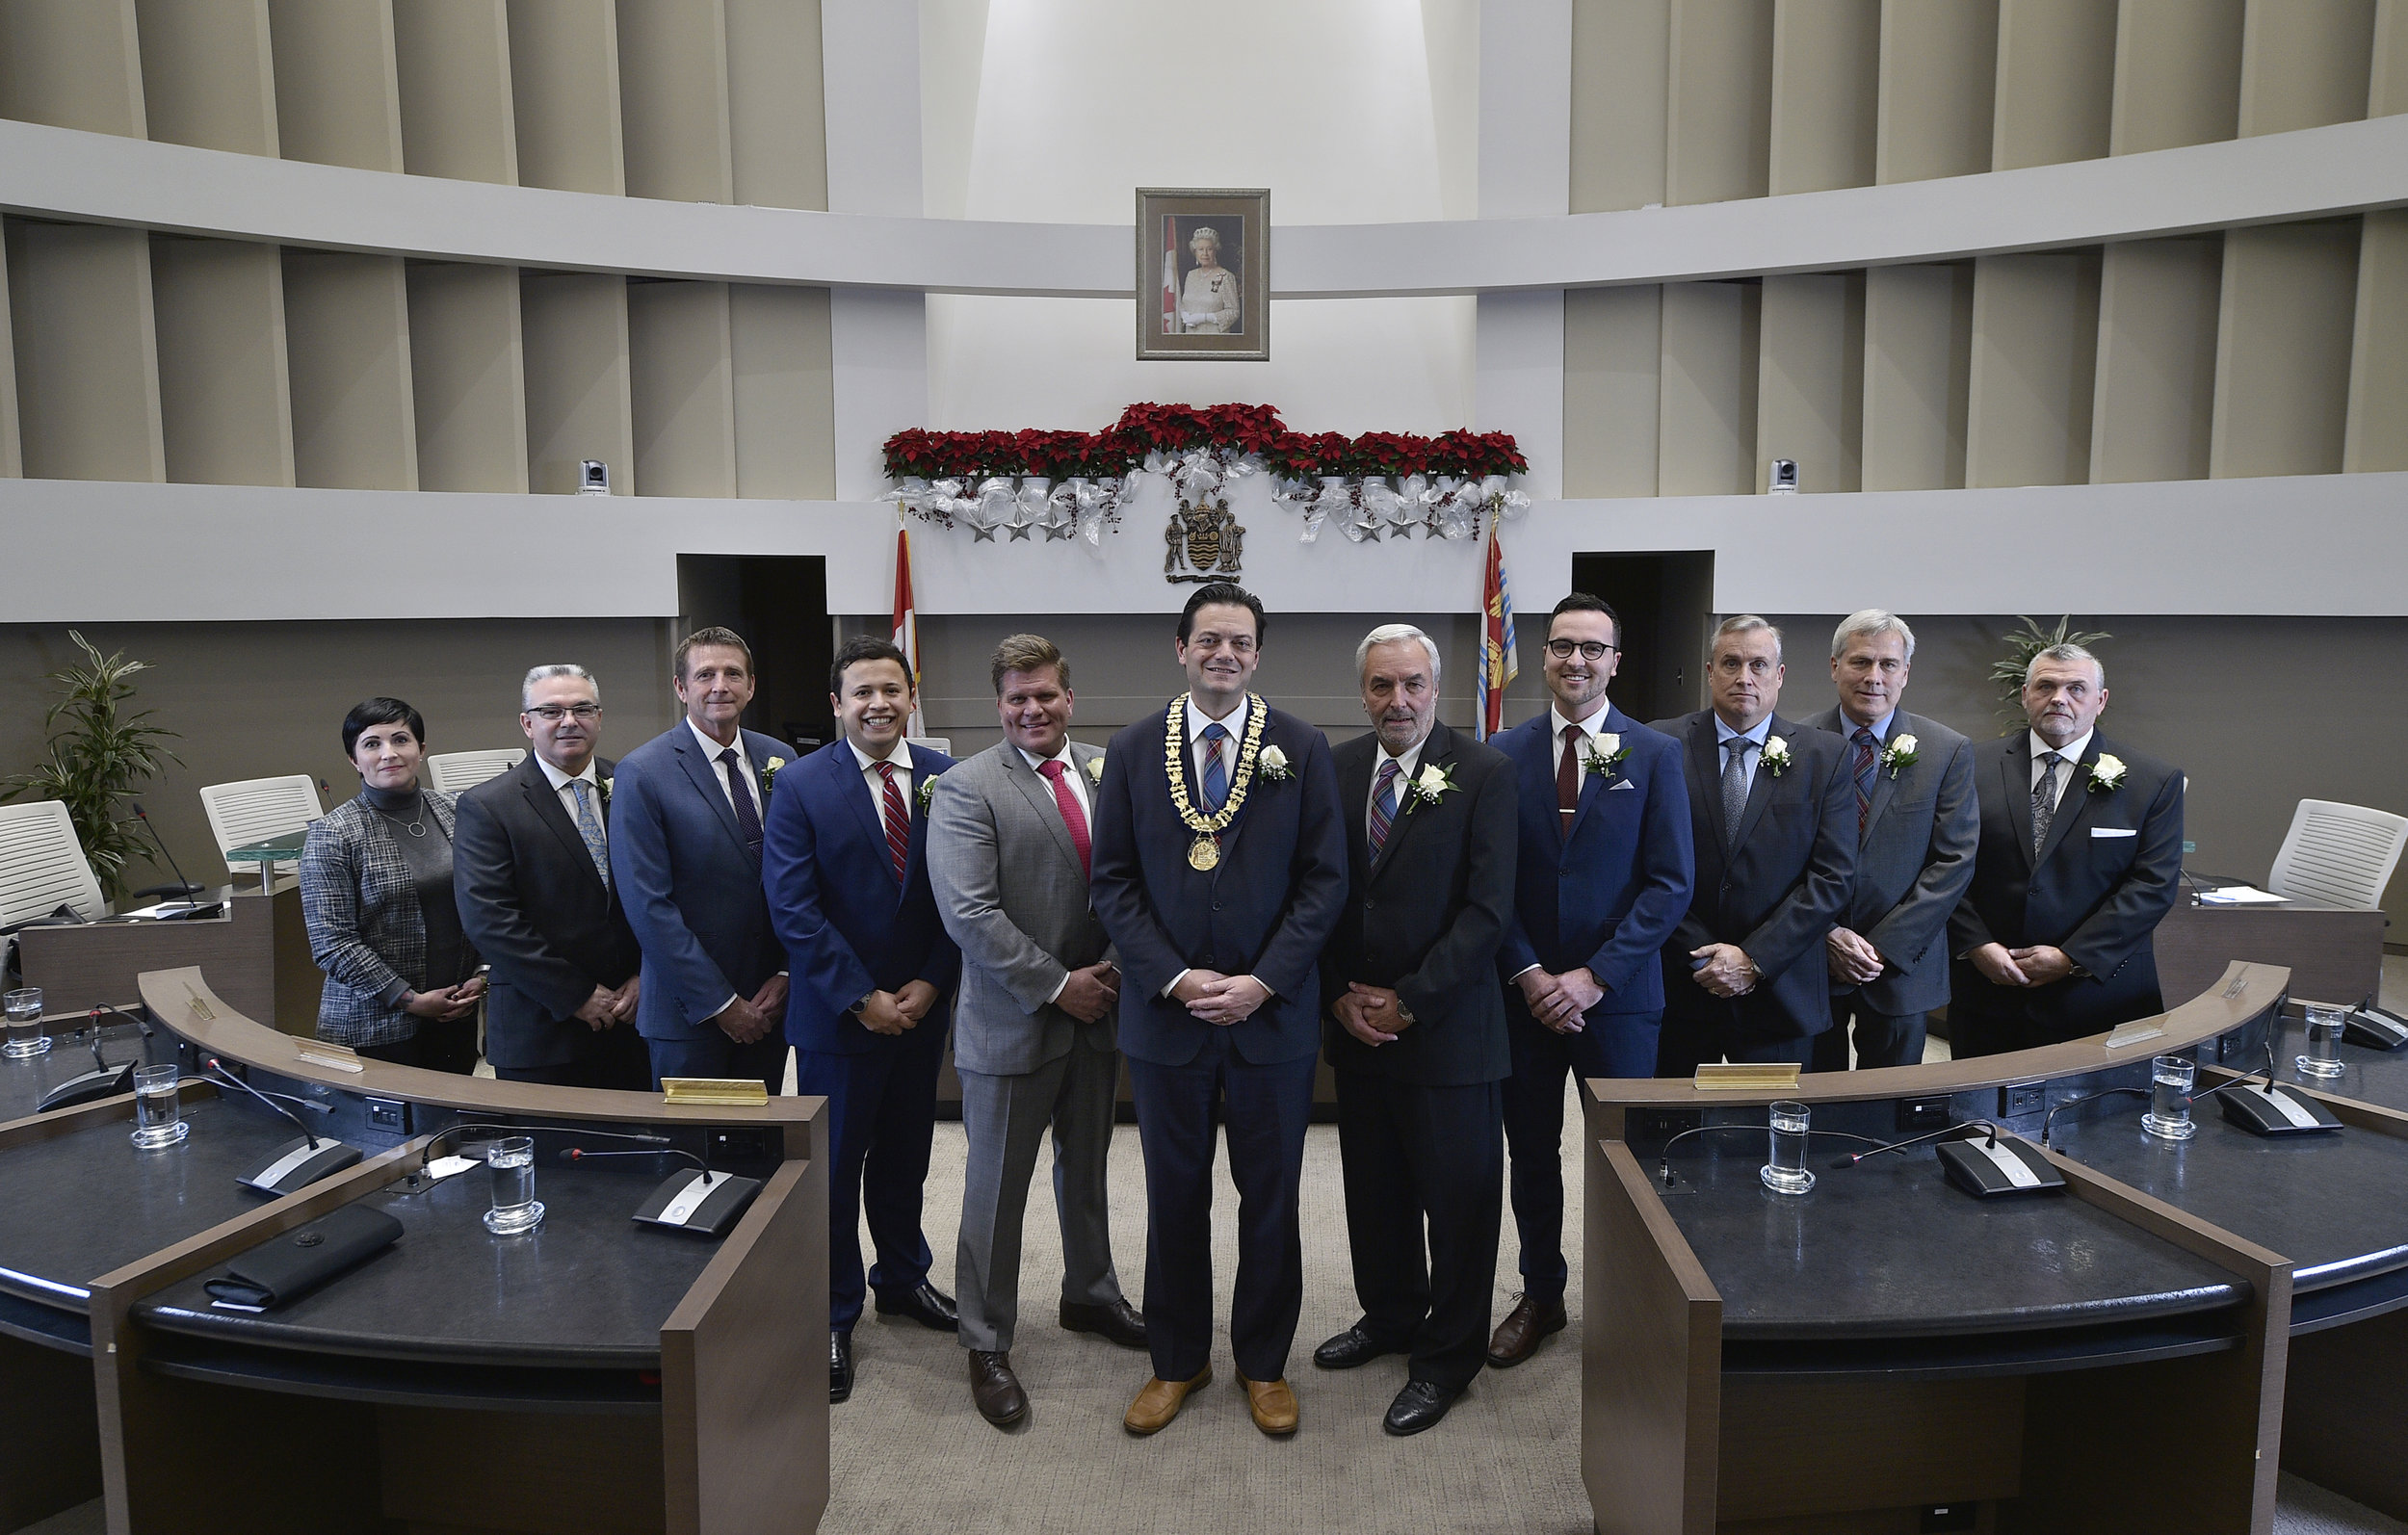 Your 2018-2022 Barrie City Council      From left to right: Ward 6 Councillor Natalie Harris, Ward 7 Councillor Gary Harvey, Ward 8 Councillor Jim Harris, Ward 9 Councillor Sergio Morales, Ward 10 Councillor Mike McCann, Mayor Jeff Lehman, Ward 1 Councillor Clare Riepma, Ward 2 Councillor Keenan Aylwin, Ward 3 Councillor Doug Shipley, Deputy Mayor and Ward 4 Councillor Barry Ward, Ward 5 Councillor Robert Thomson   .